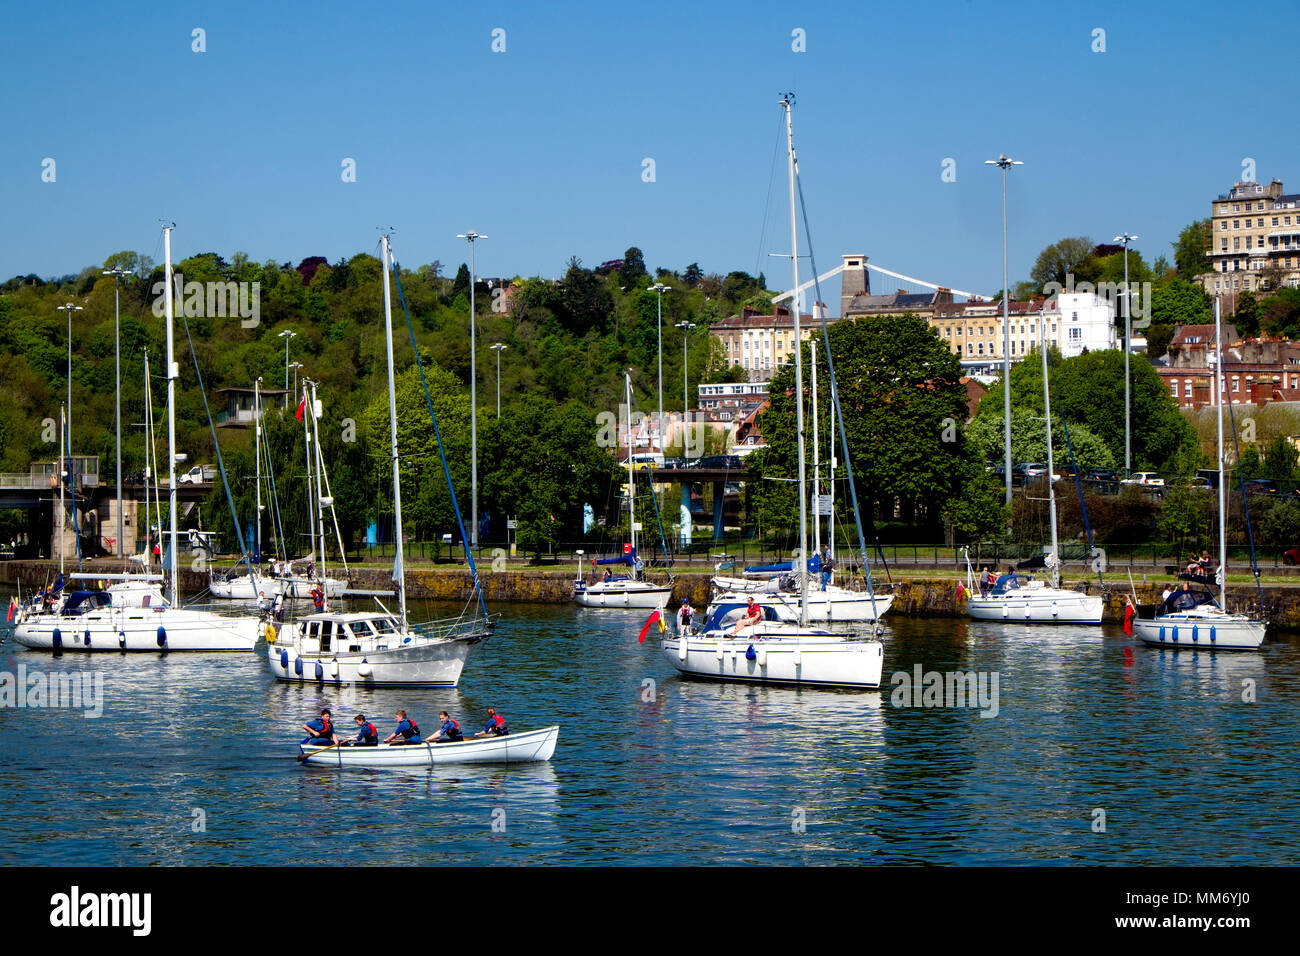 A flotilla of boats waits in the Cumberland Basin, Bristol for the second of two swing bridges to open enabling access to the city's Floating Harbour. - Stock Image